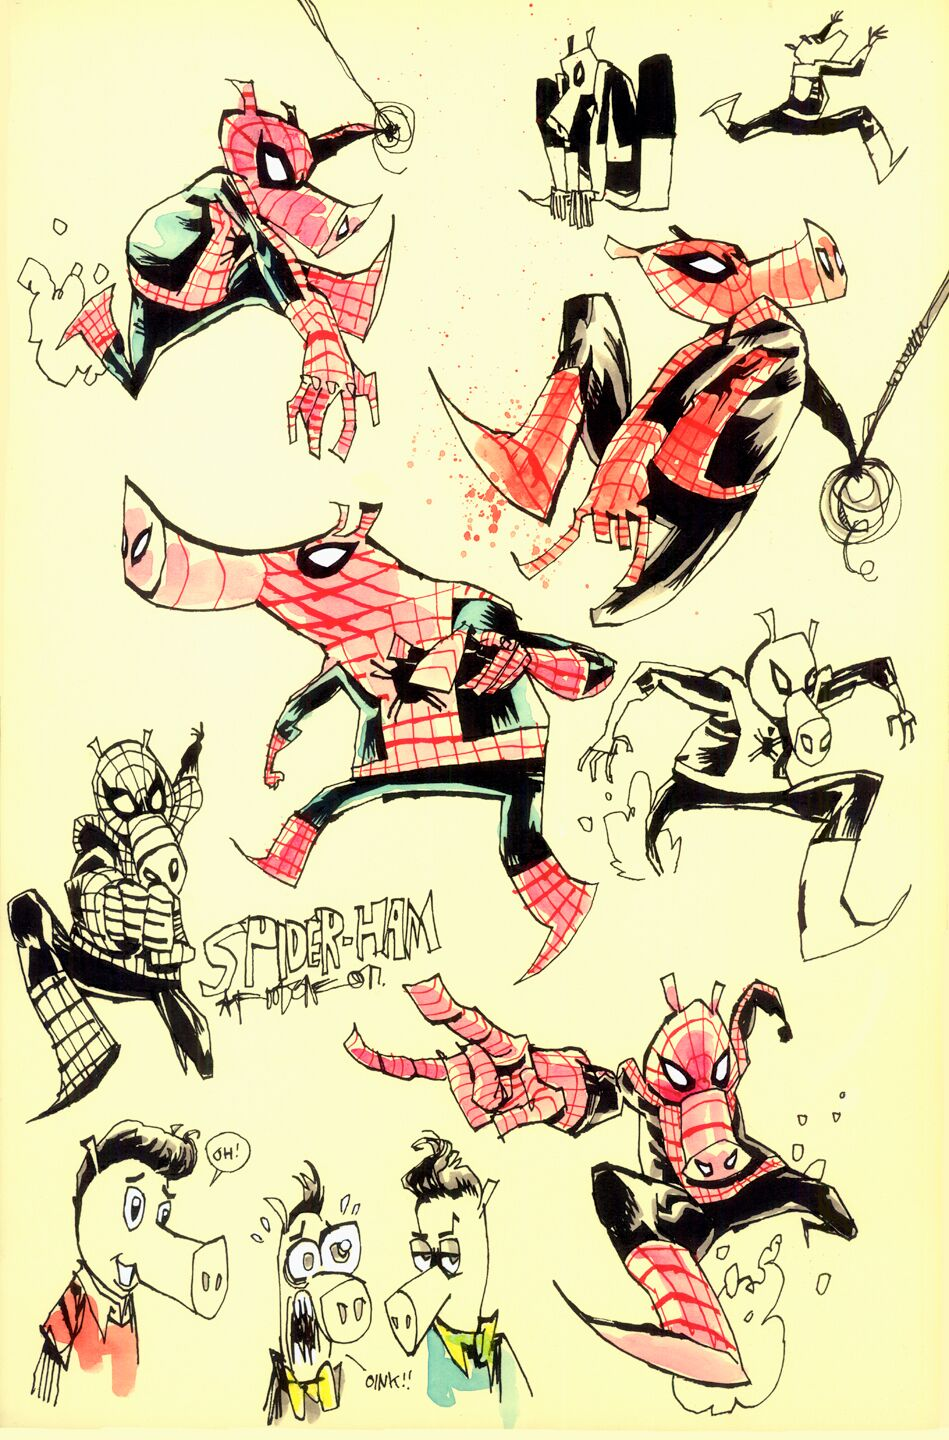 new-spider-ham-focused-featurette-and-concept-art-from-spider-man-into-the-spider-verse